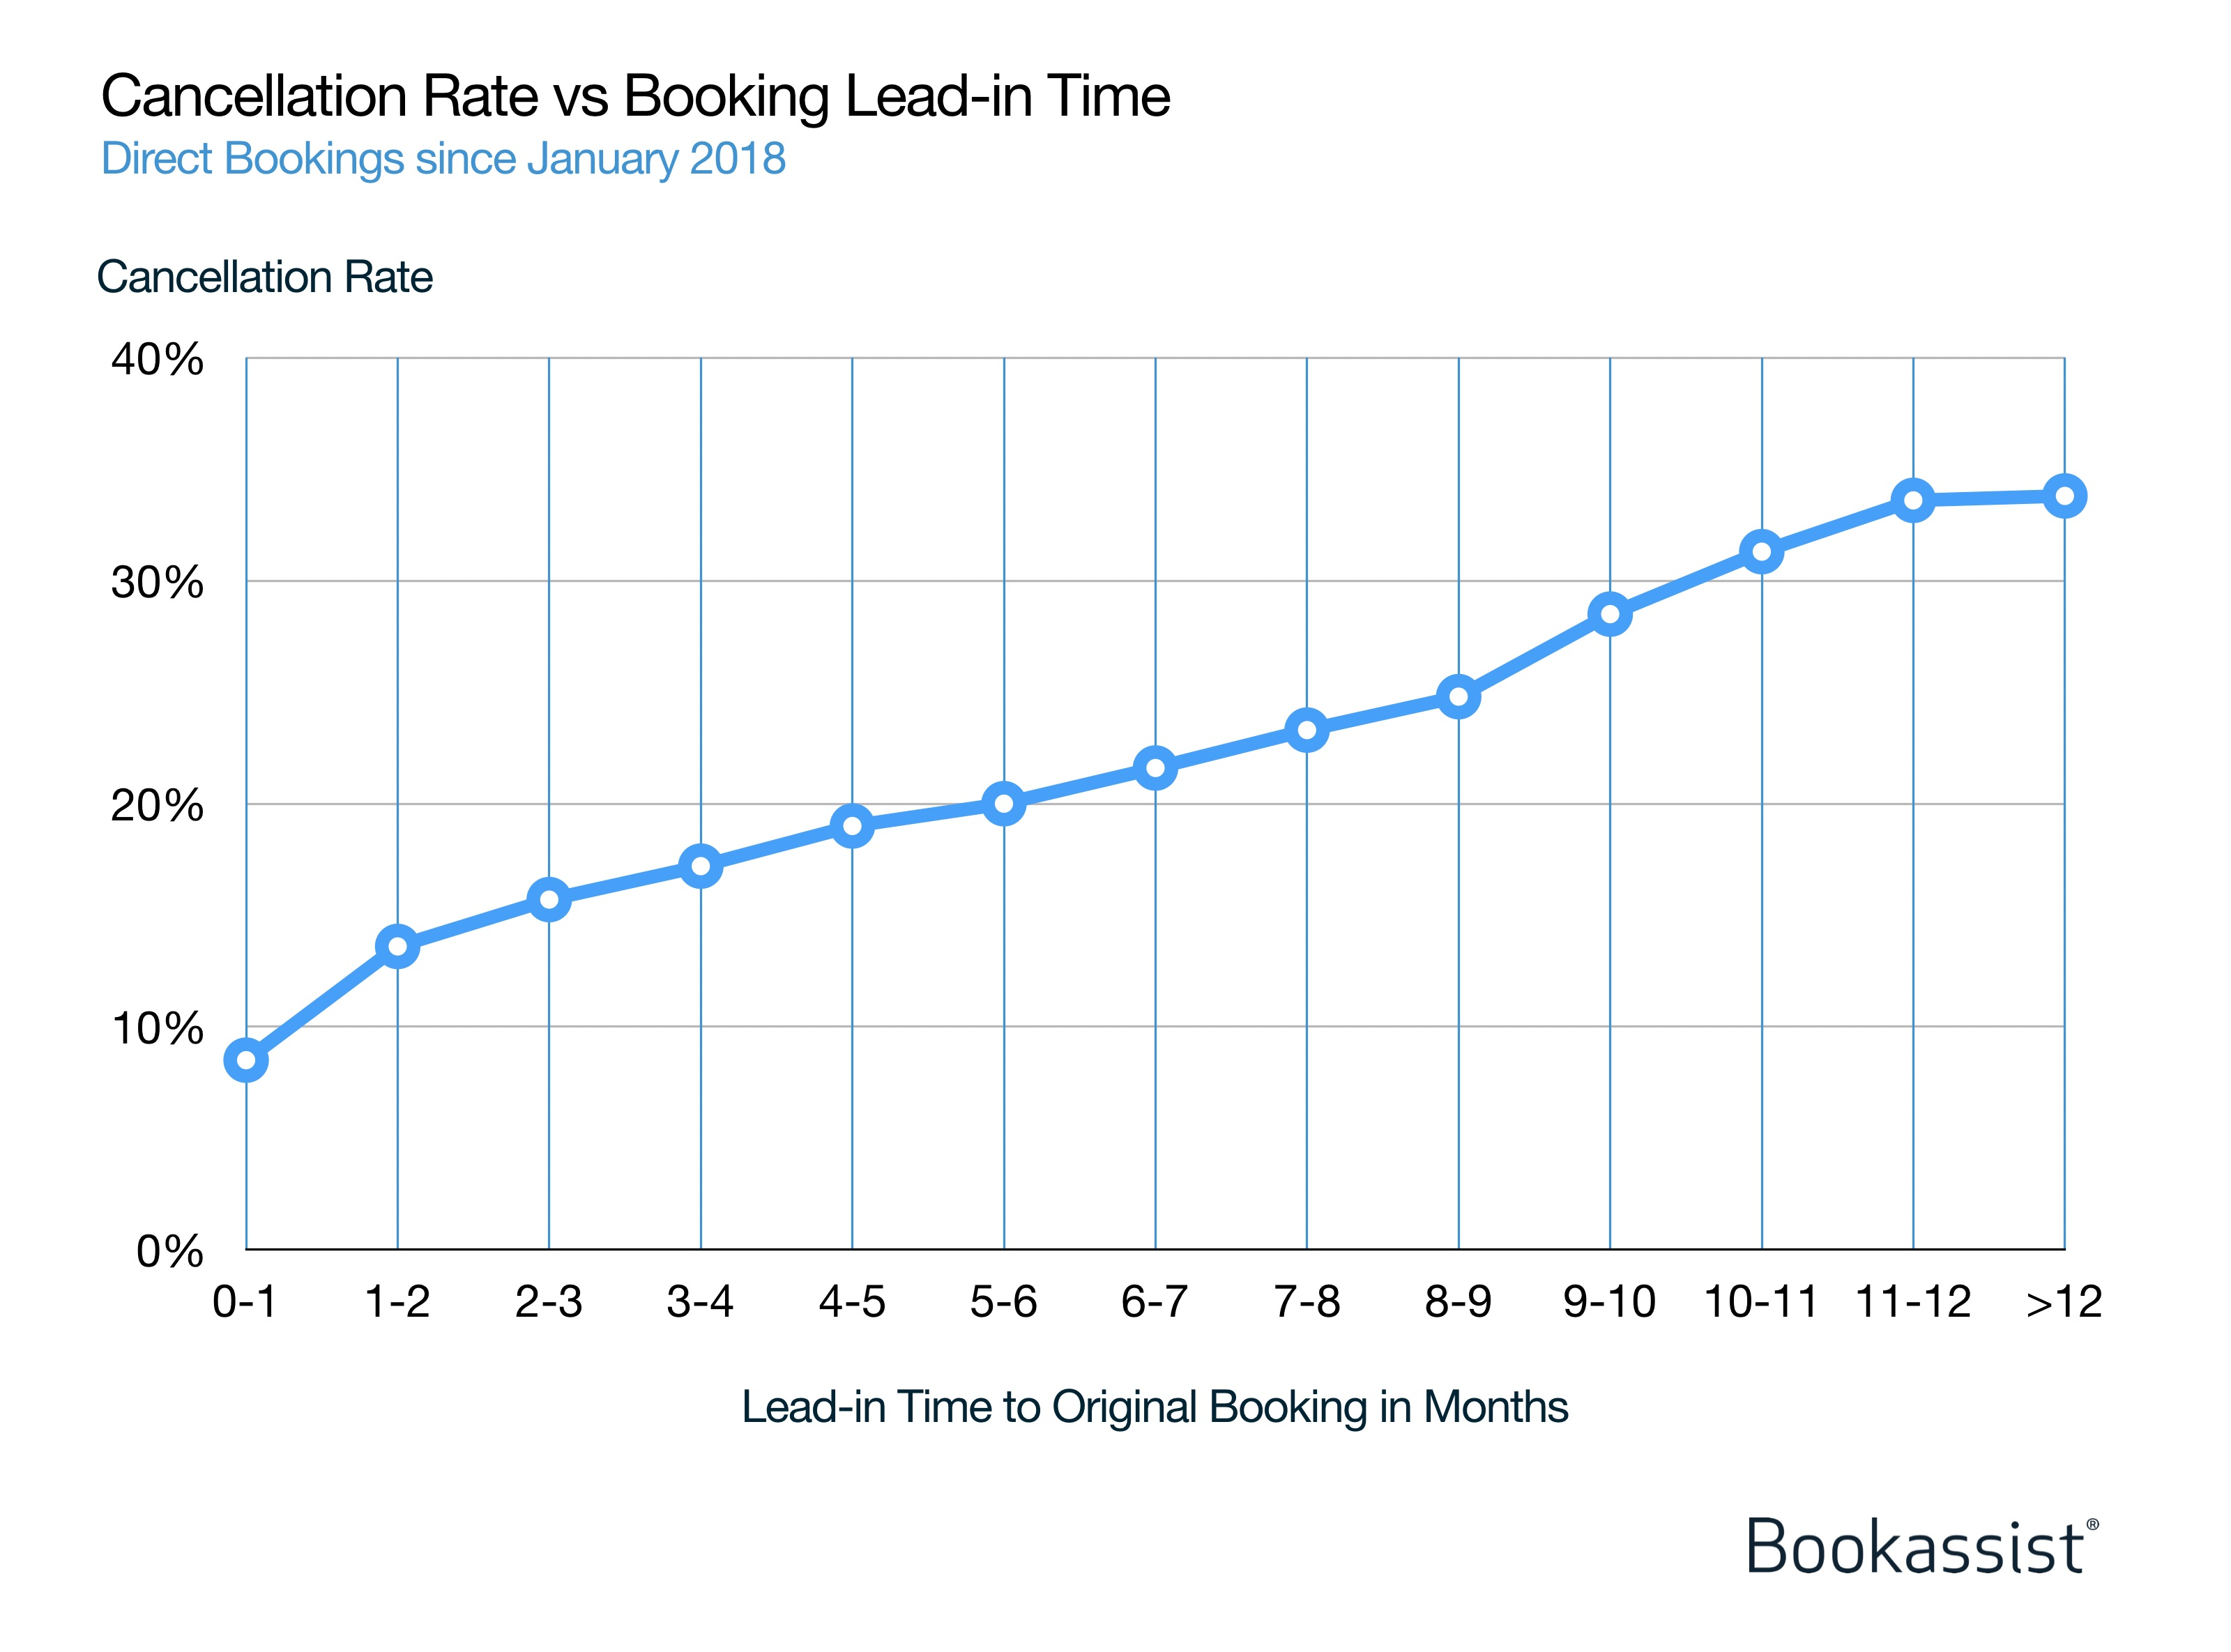 Figure 2: Bookassist data on direct booking cancellation rates versus lead-in time across hundreds of thousands of bookings in multiple markets back to January 2018. The further out a booking is made, the more likely it is to be cancelled.